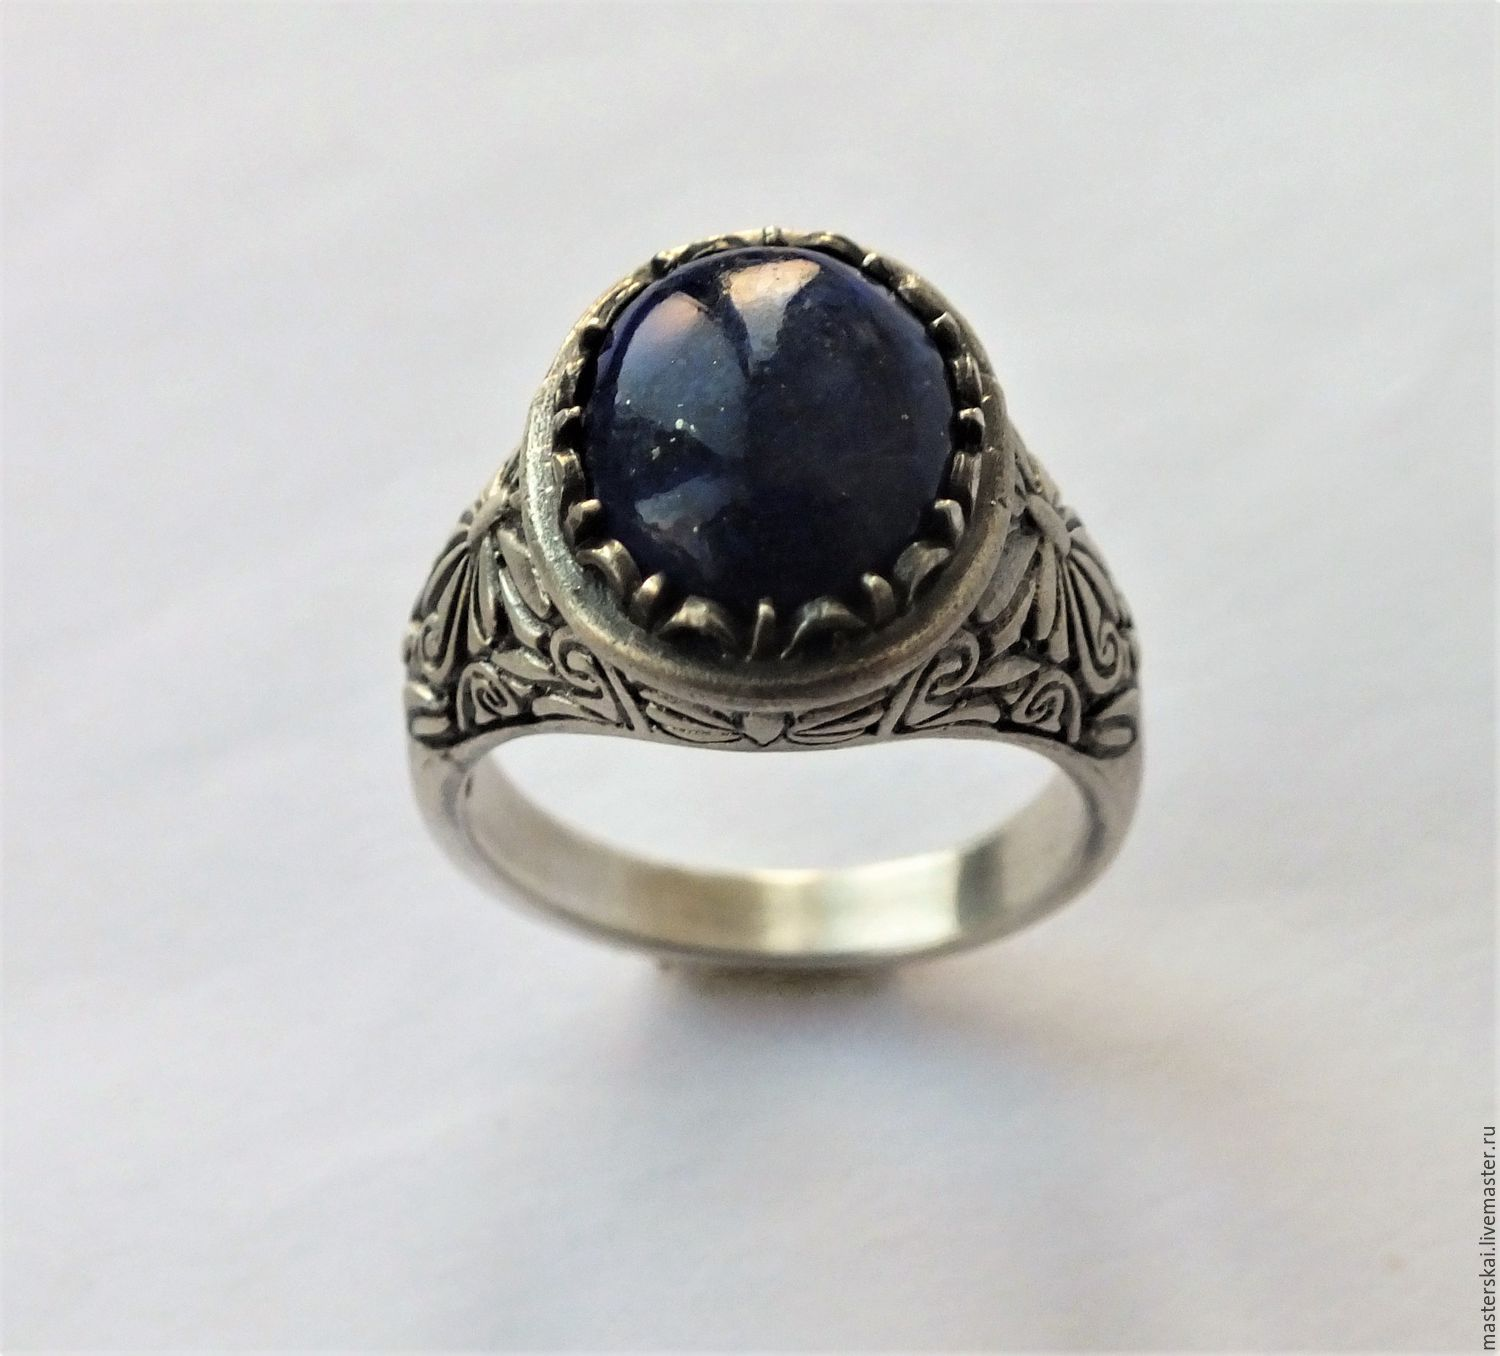 Ring 'Azure' - lapis lazuli, 925 silver, Rings, Moscow,  Фото №1